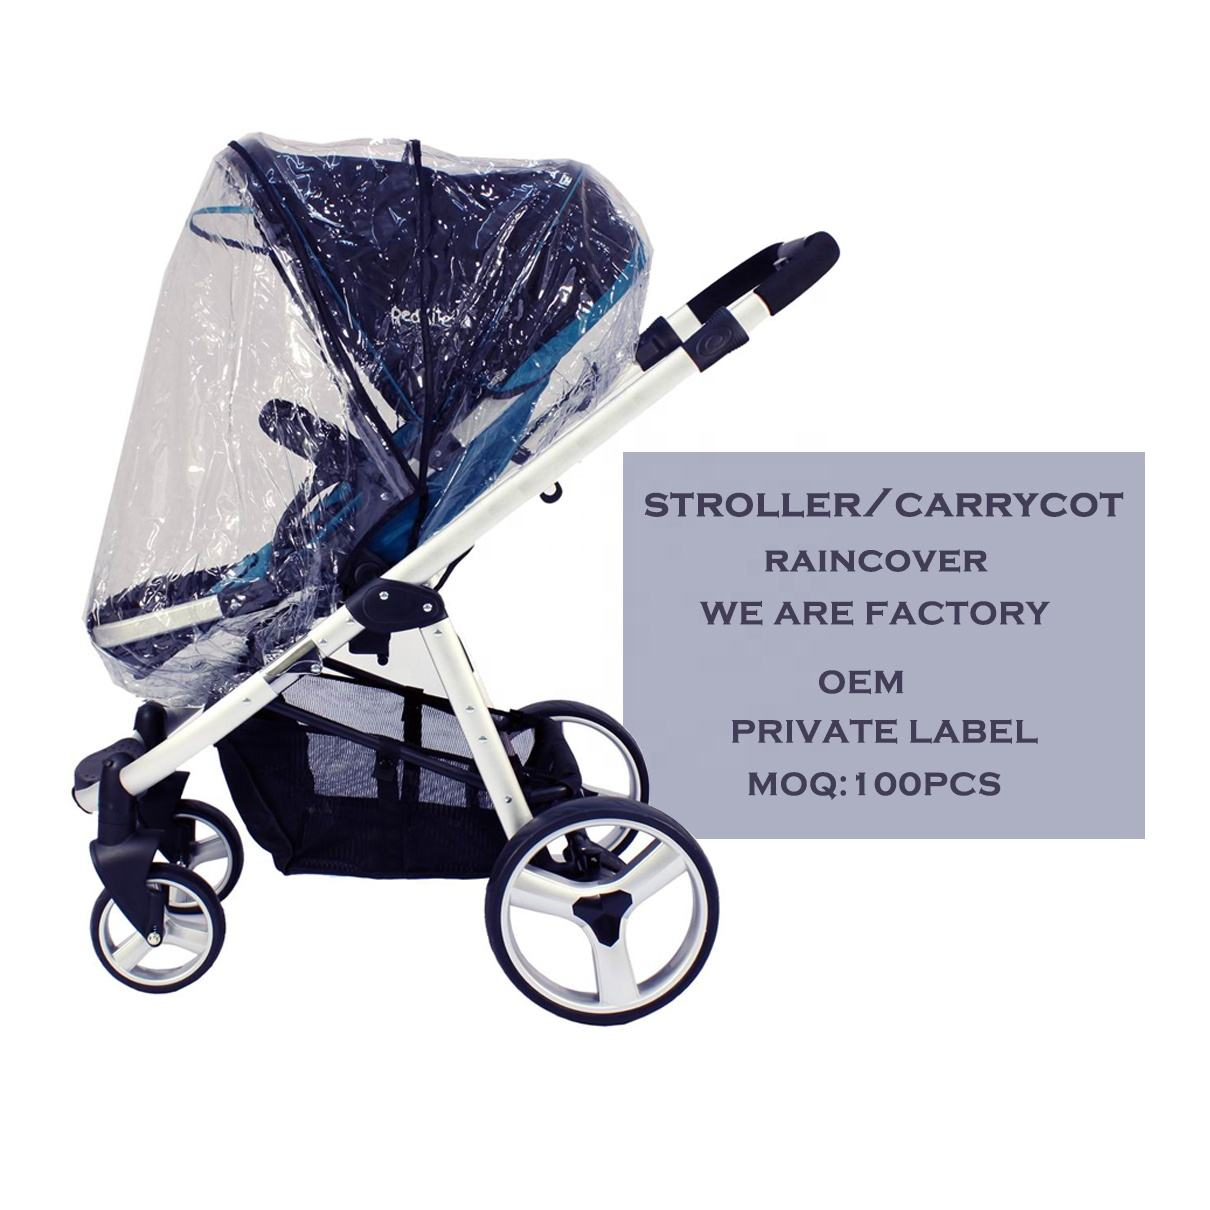 Baby Stroller Shield Clear Baby Travel Argos Buggy Stroller Wind Rain Cover Shield Protector Raincoat Weather Cover Near Me Amazon For Baby Stroller